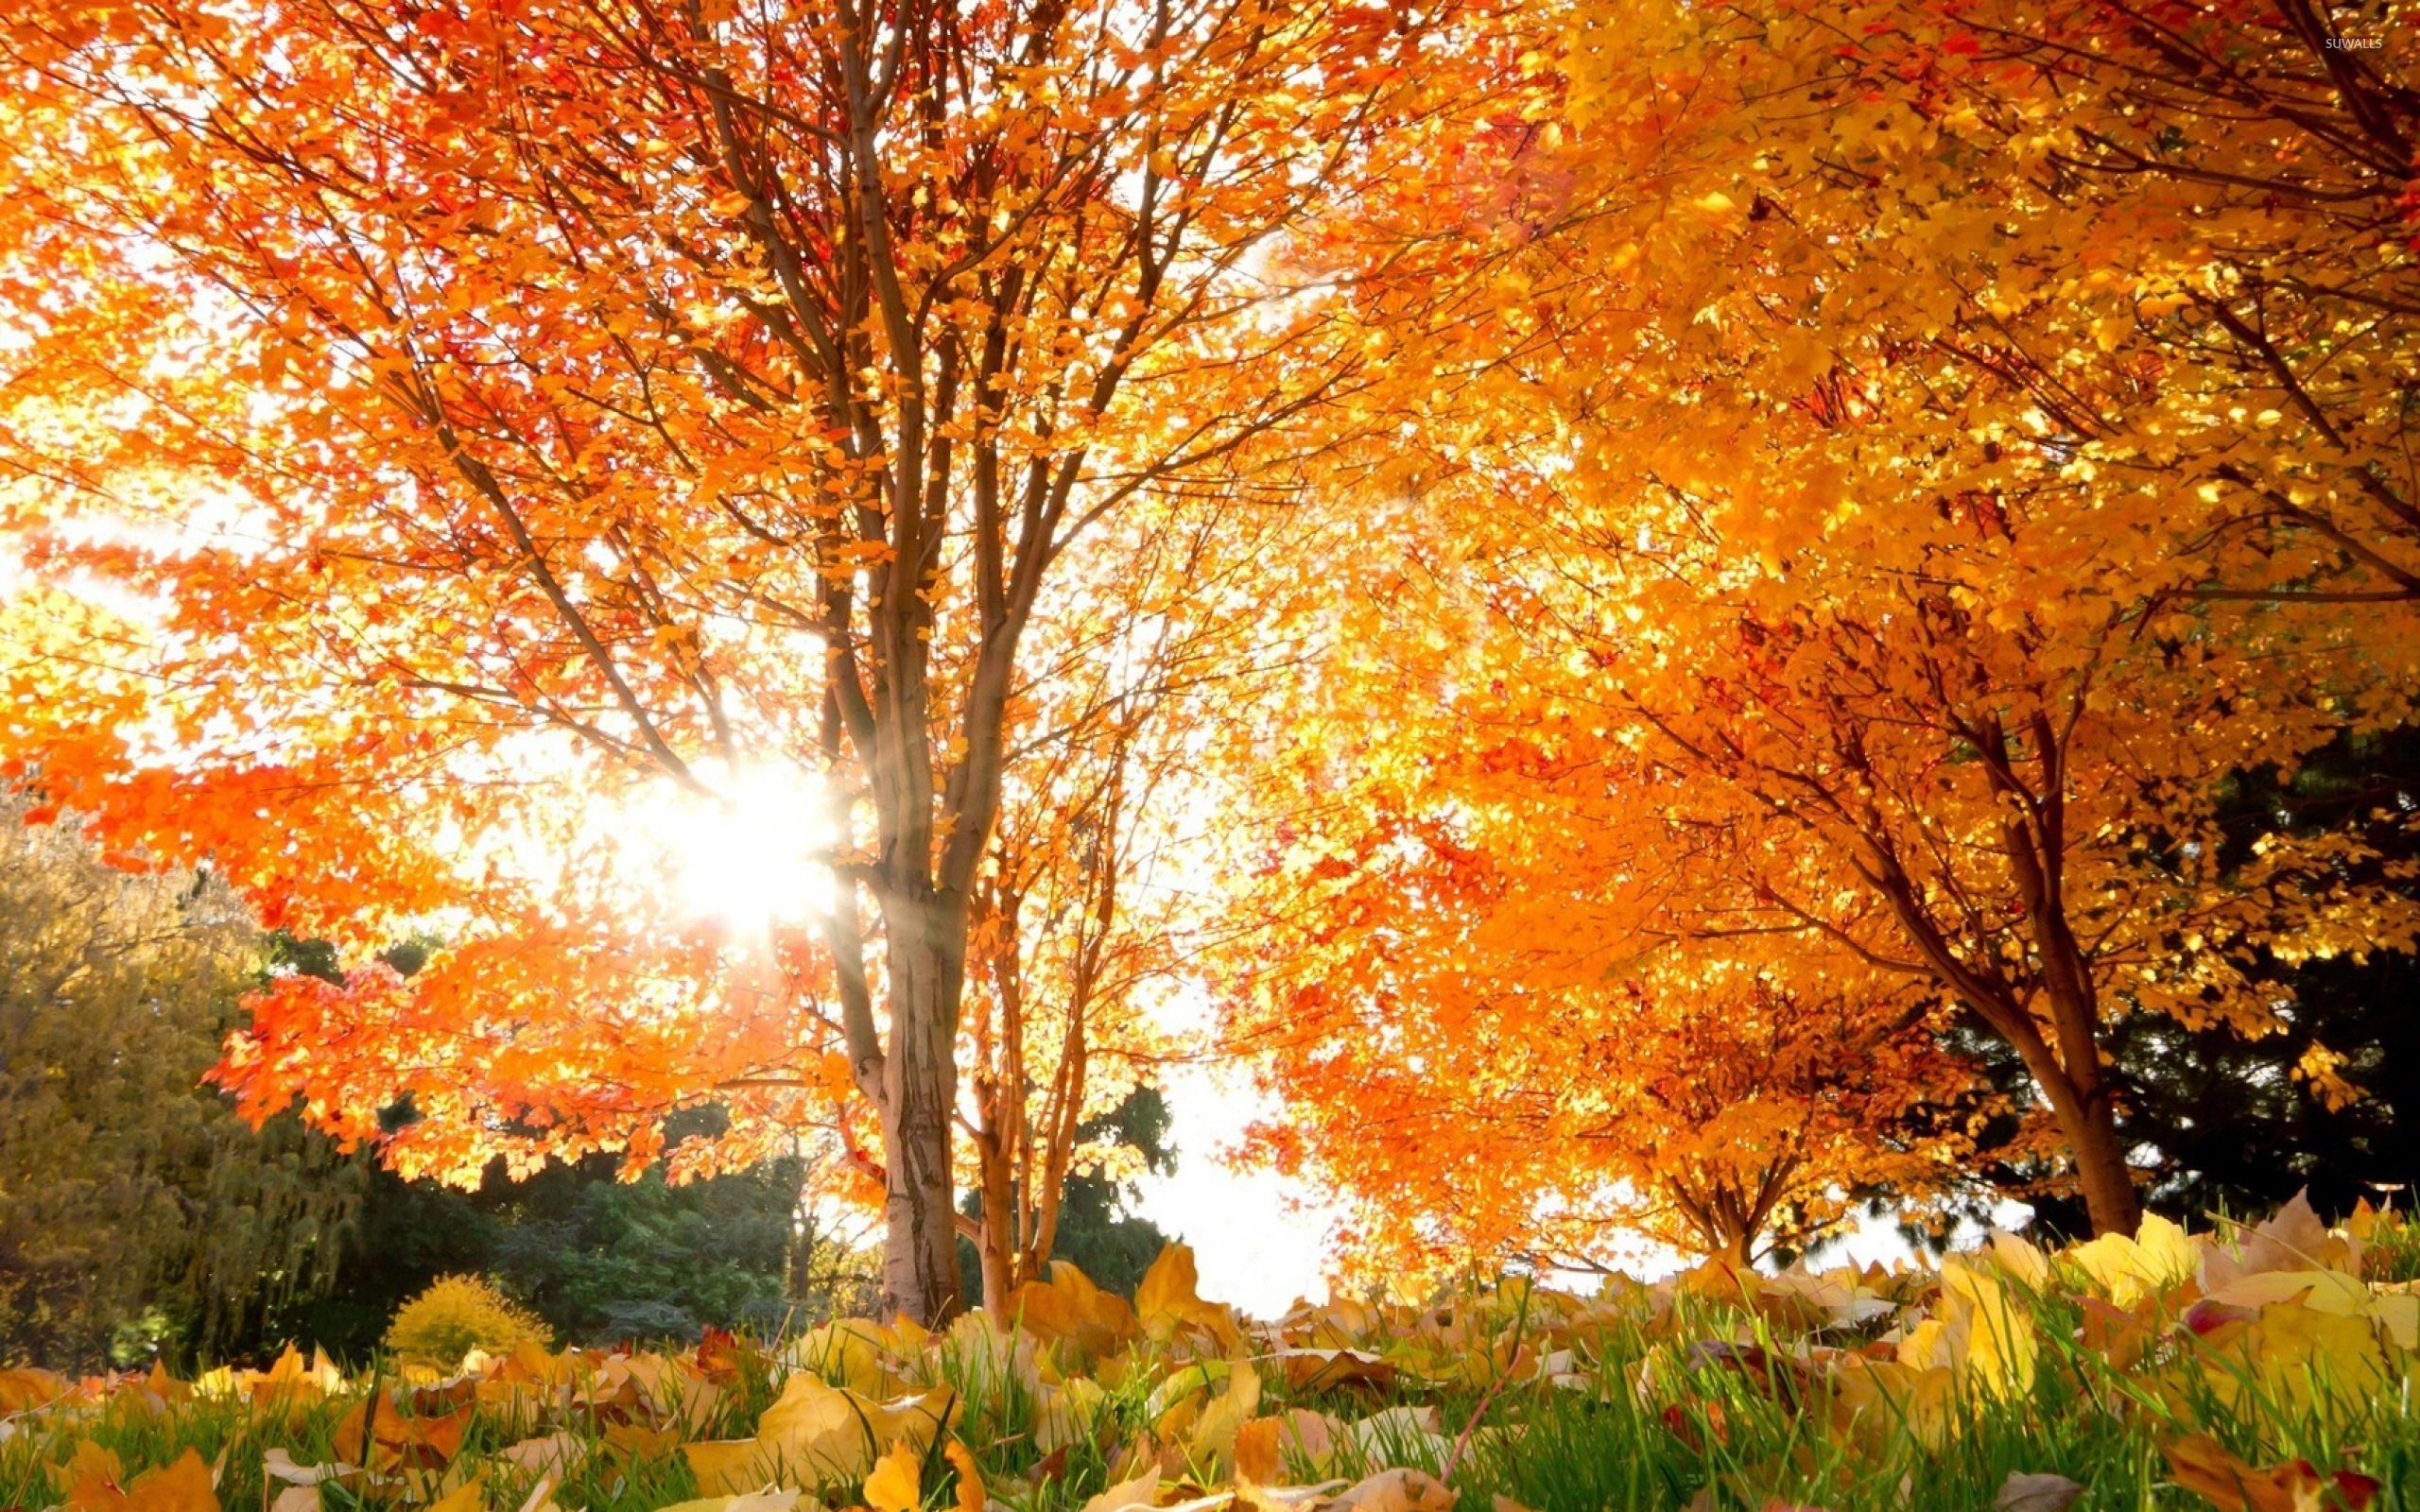 autumn trees in the park wallpaper - nature wallpapers - #34855